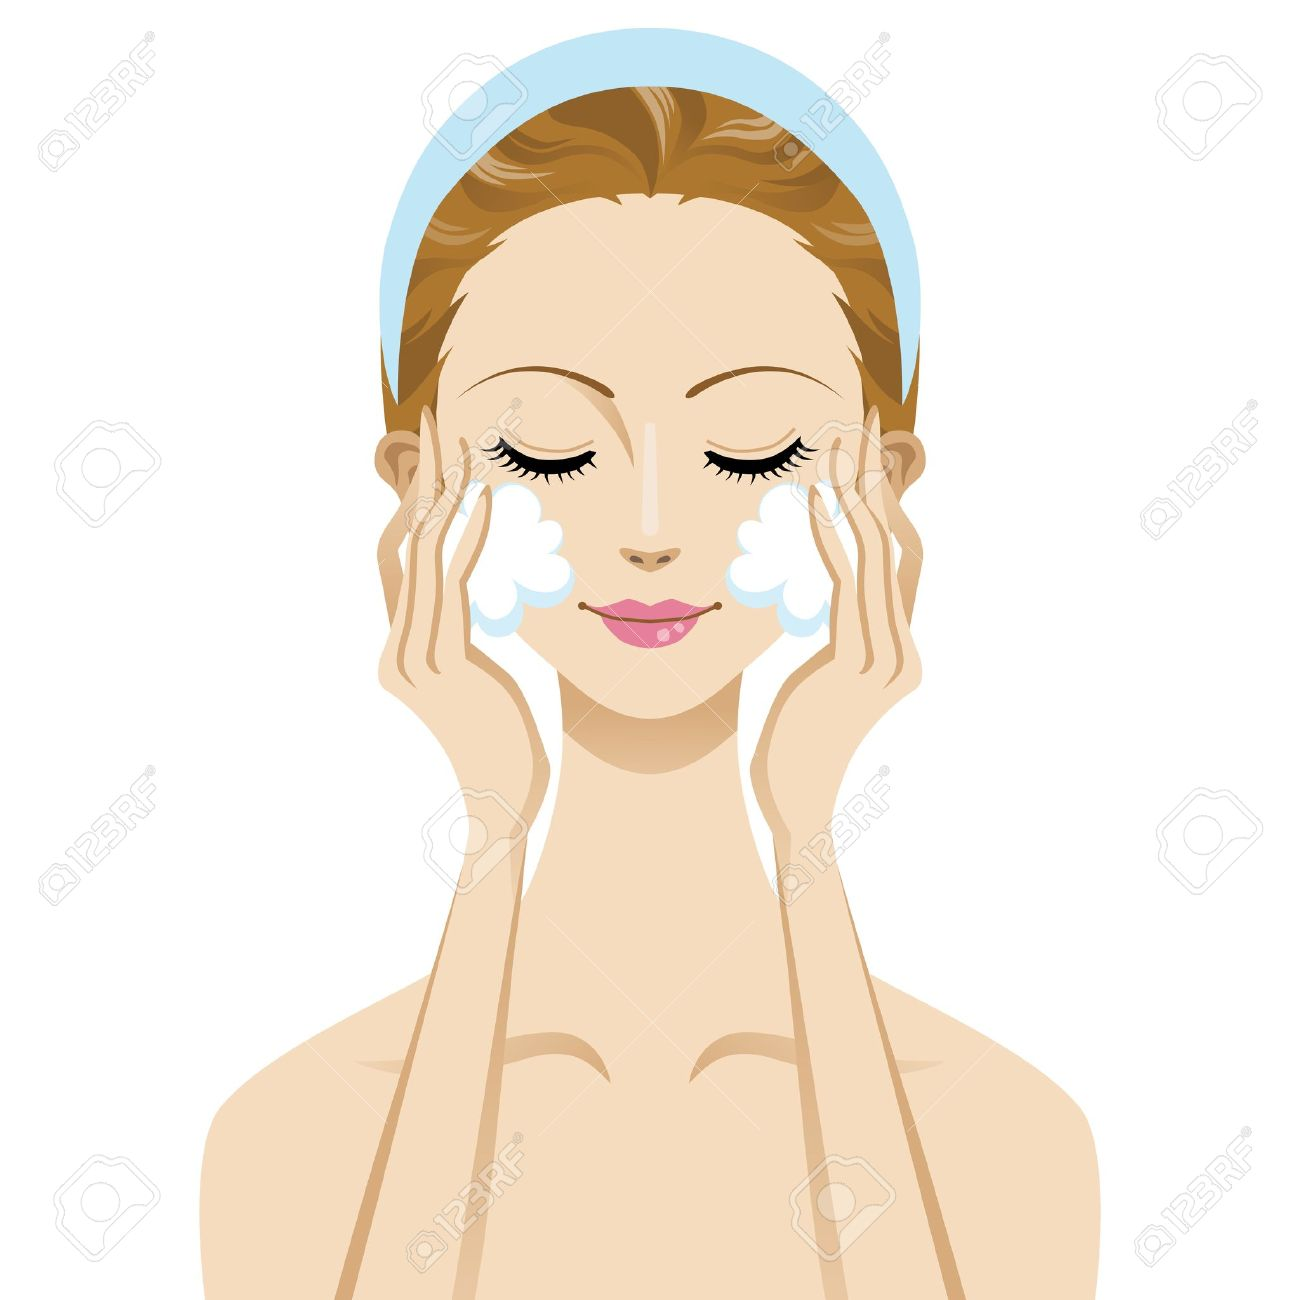 Skin Care Beauty Woman Image , Cleansing Foam Royalty Free.